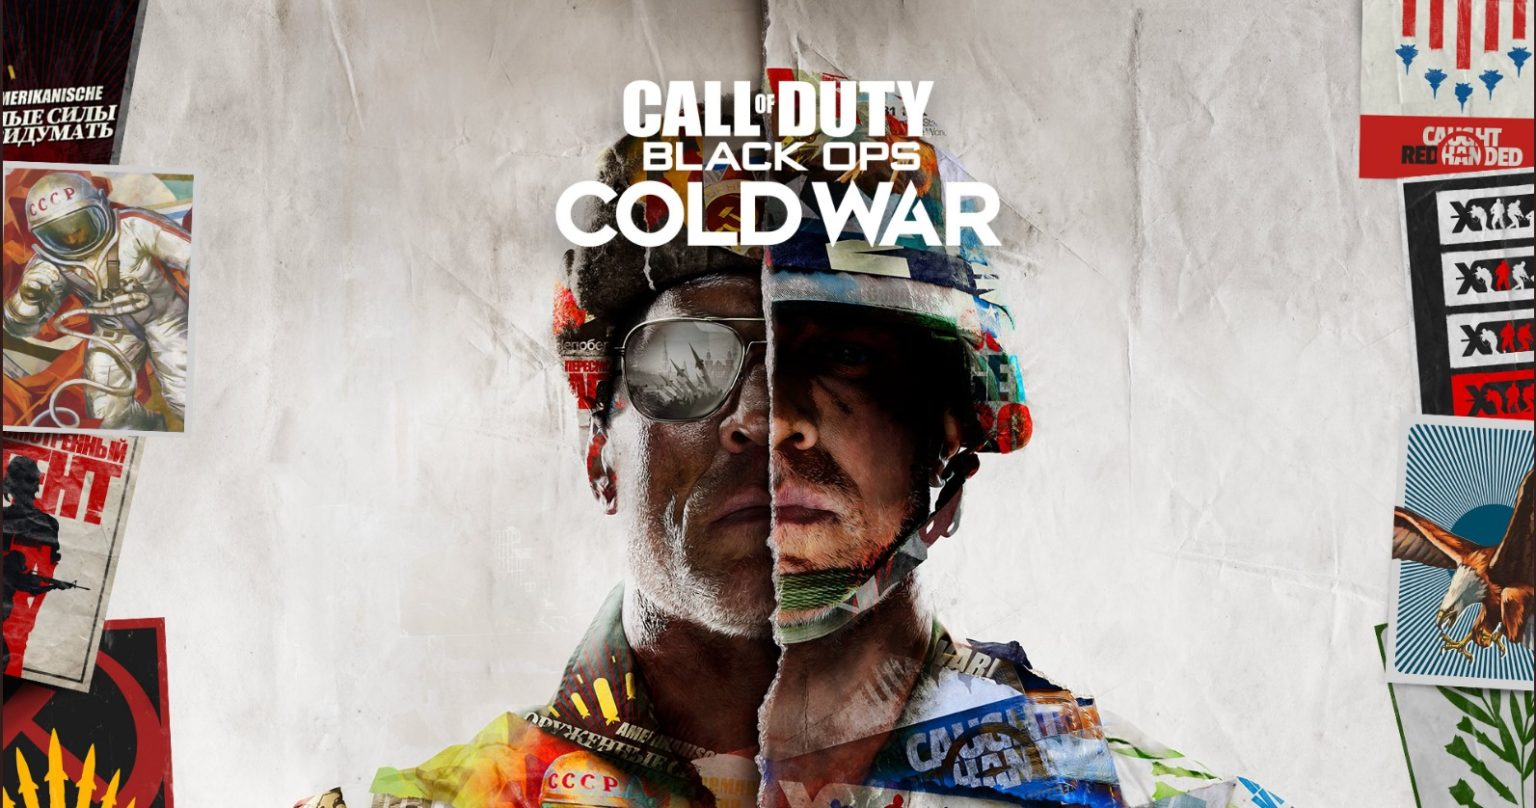 Cómo jugar multijugador en pantalla dividida en Call of Duty: Black Ops Cold War